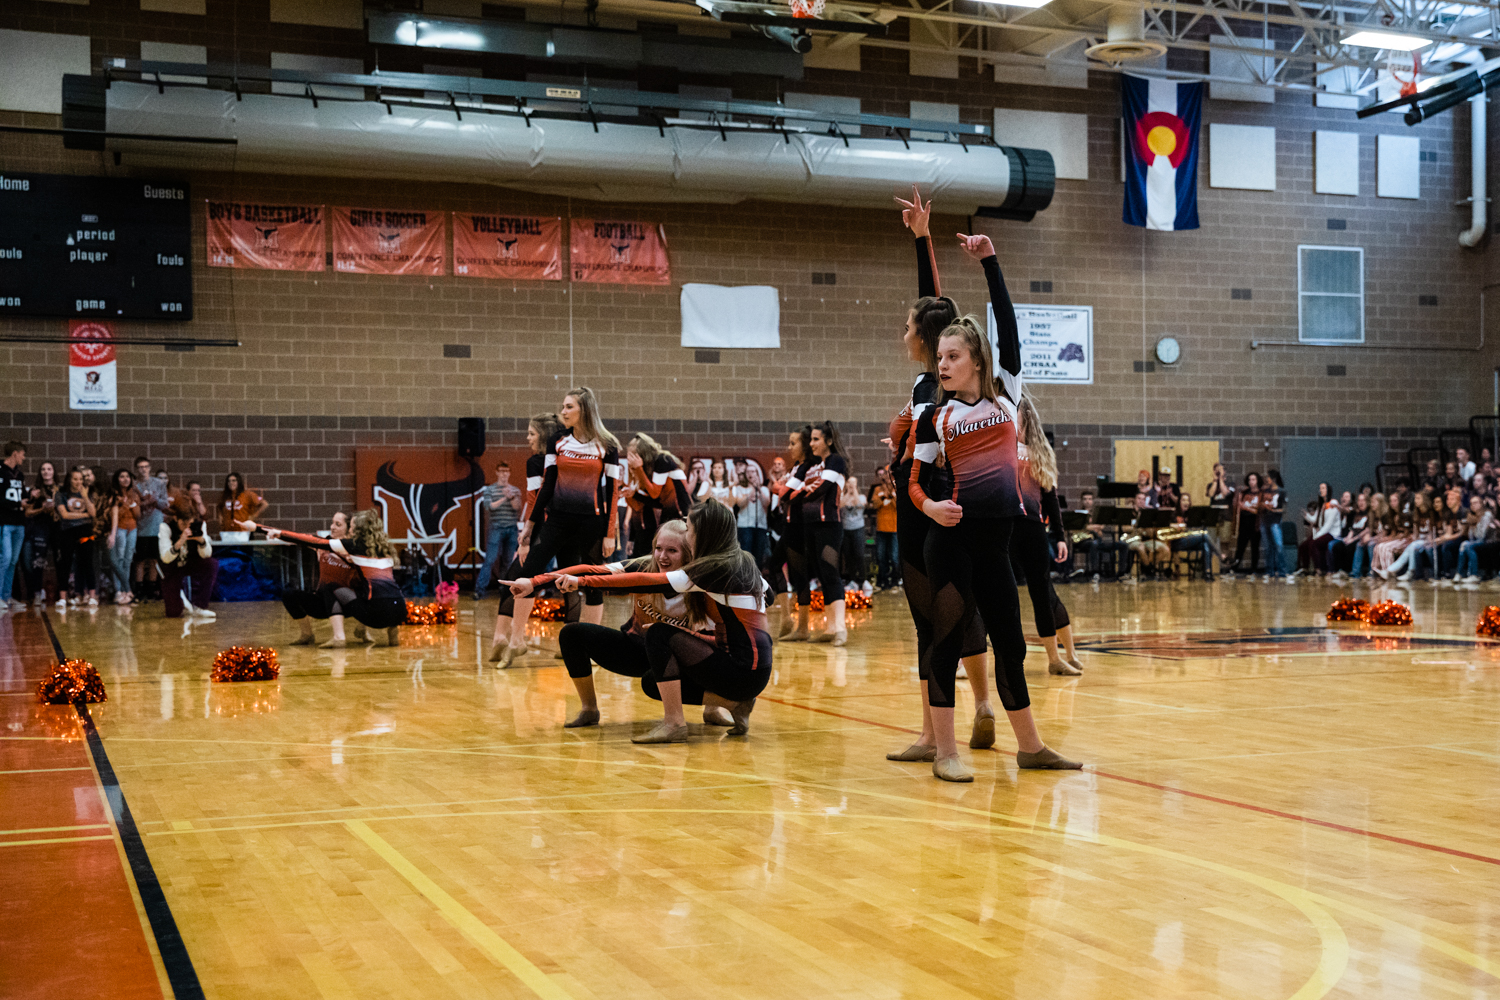 The+Dance+Team+followed+Cheer+with+an+equally+impressive+routine.